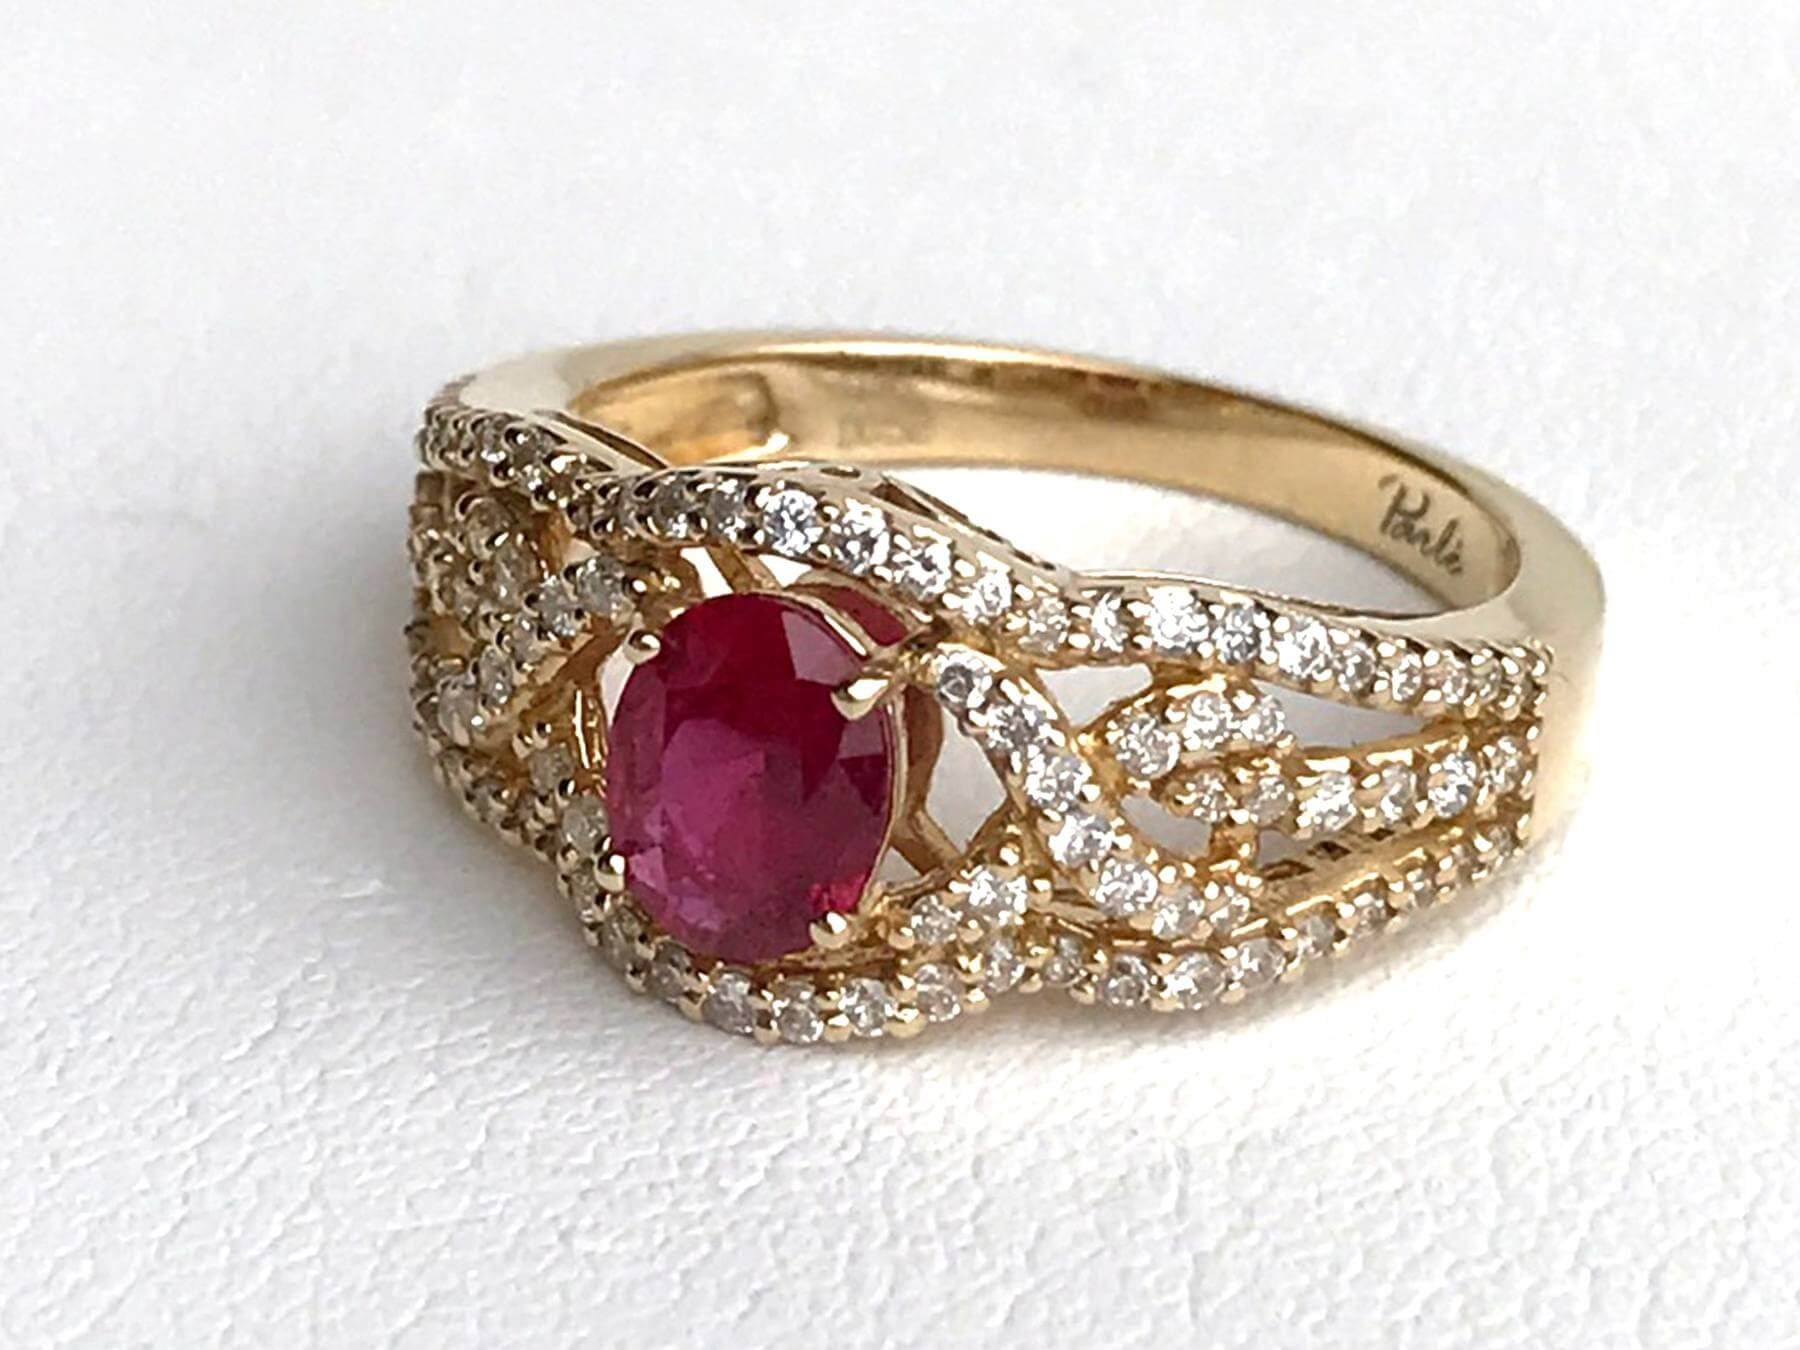 .82 carat ruby ring with accent diamonds from Clater Jewelers